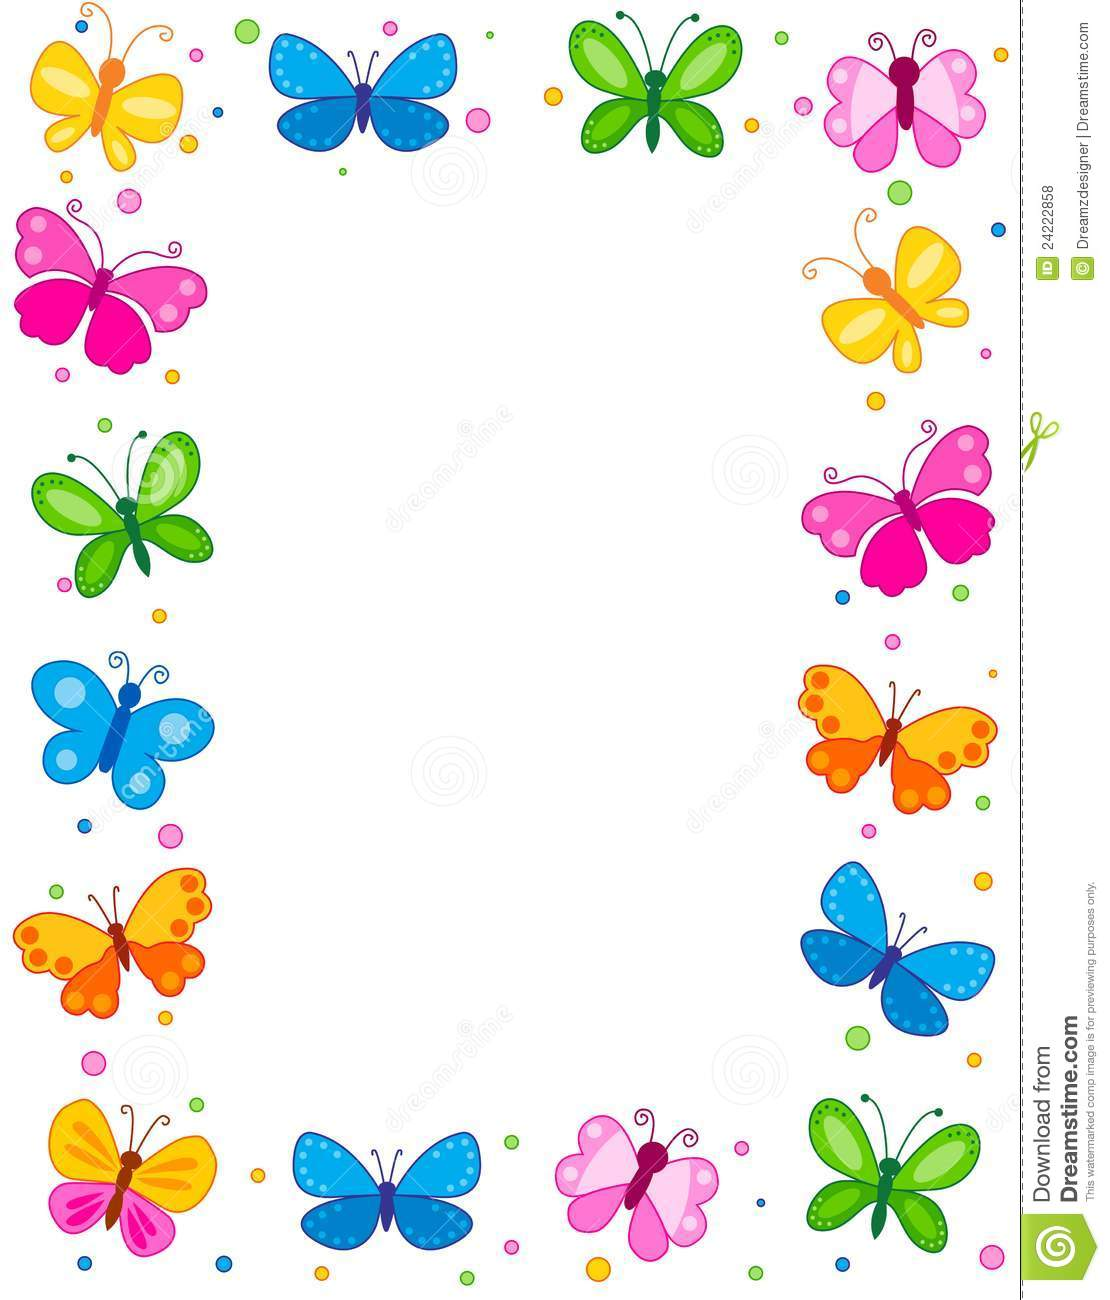 Butterfly clipart boarder. Border station